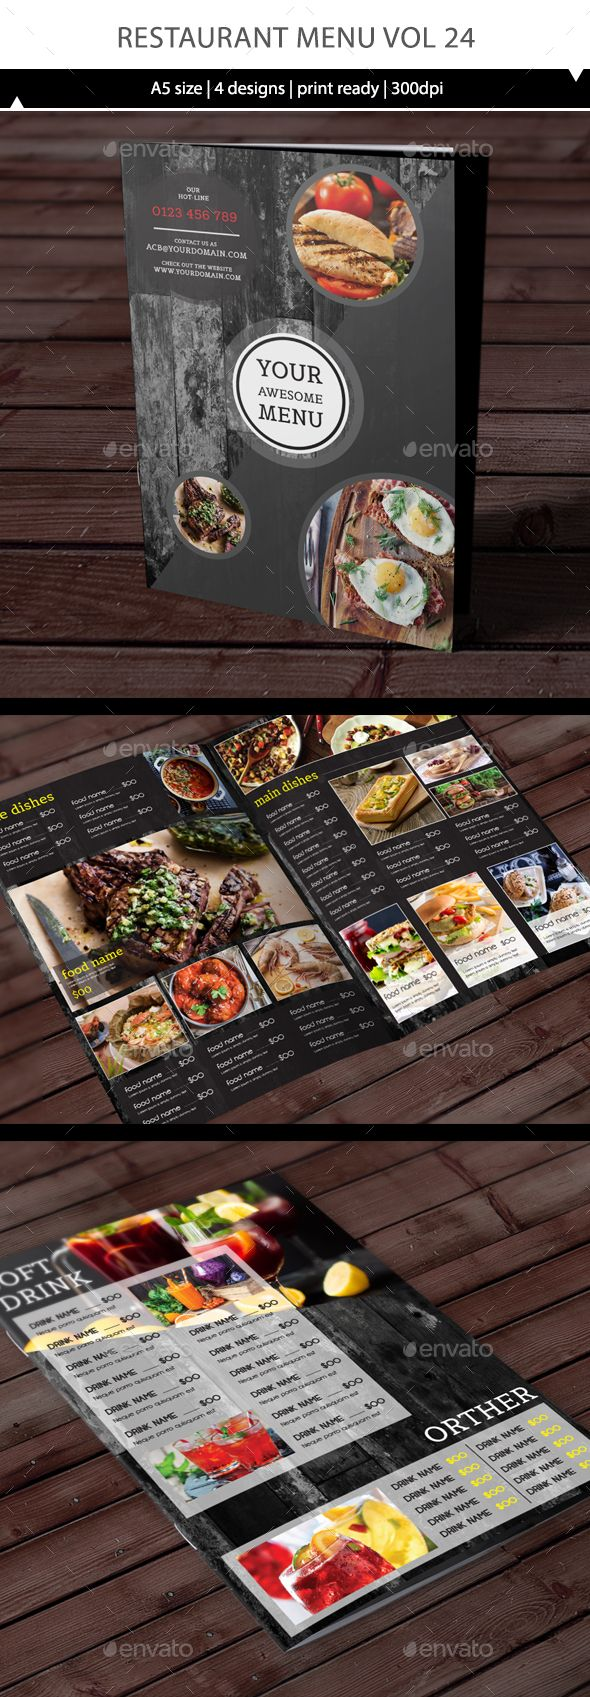 Best ideas about restaurant menu design on pinterest